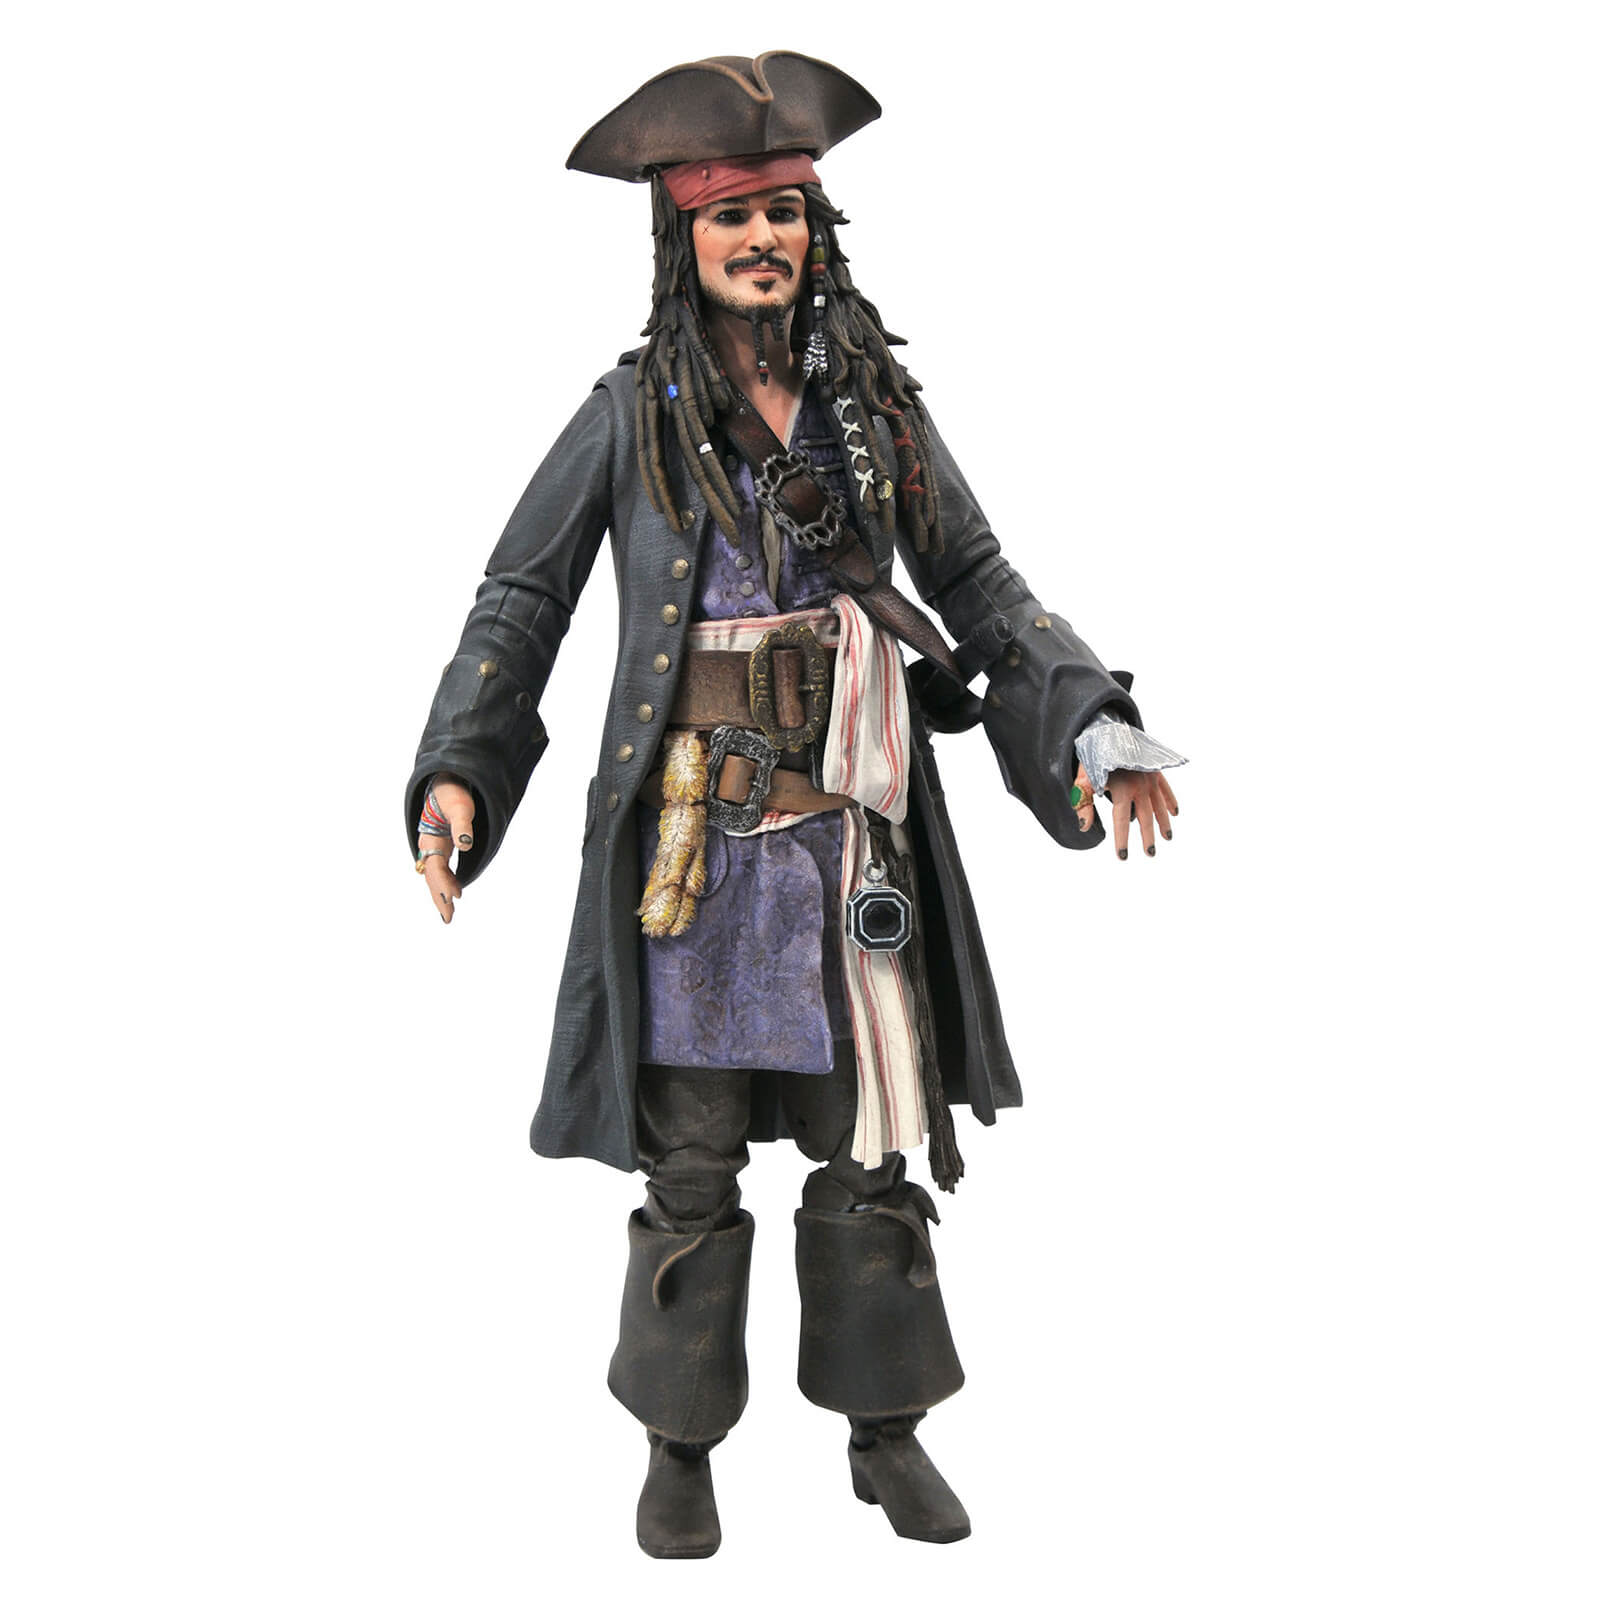 Diamond Select The Pirates Of The Caribbean Deluxe Action Figure - Jack Skellington